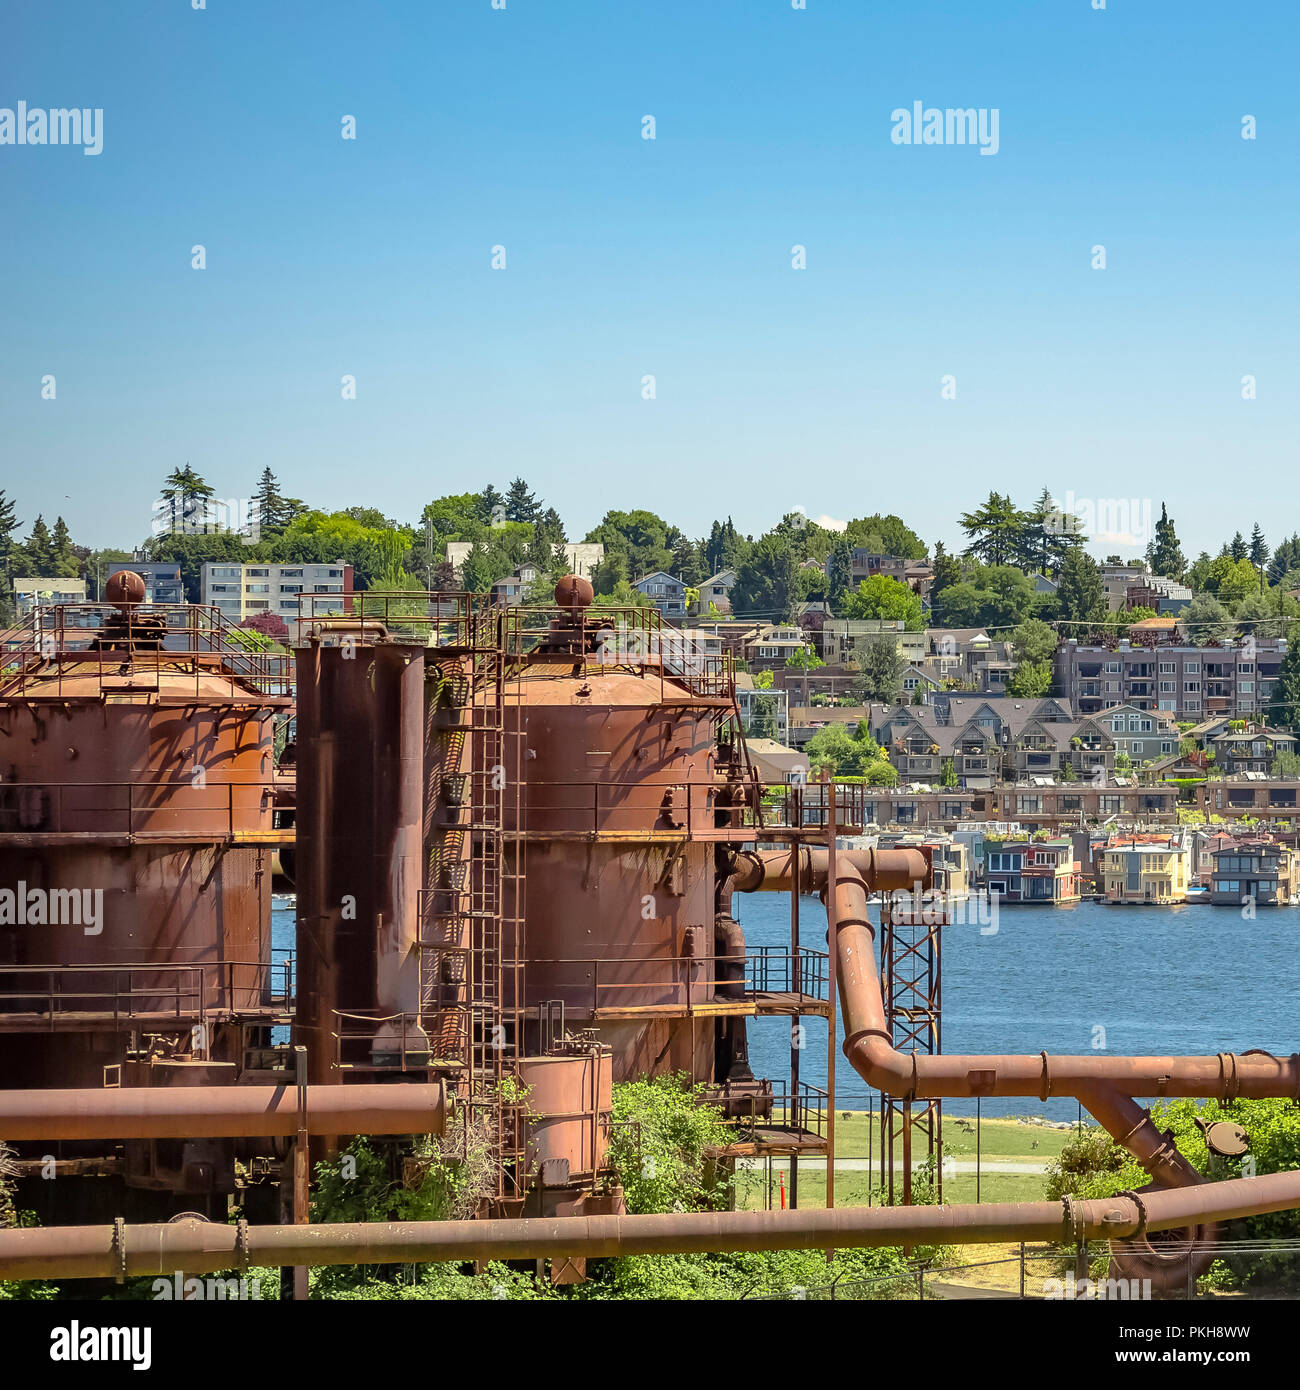 Tanks at Gas Works Park with view of Lake Union - Stock Image